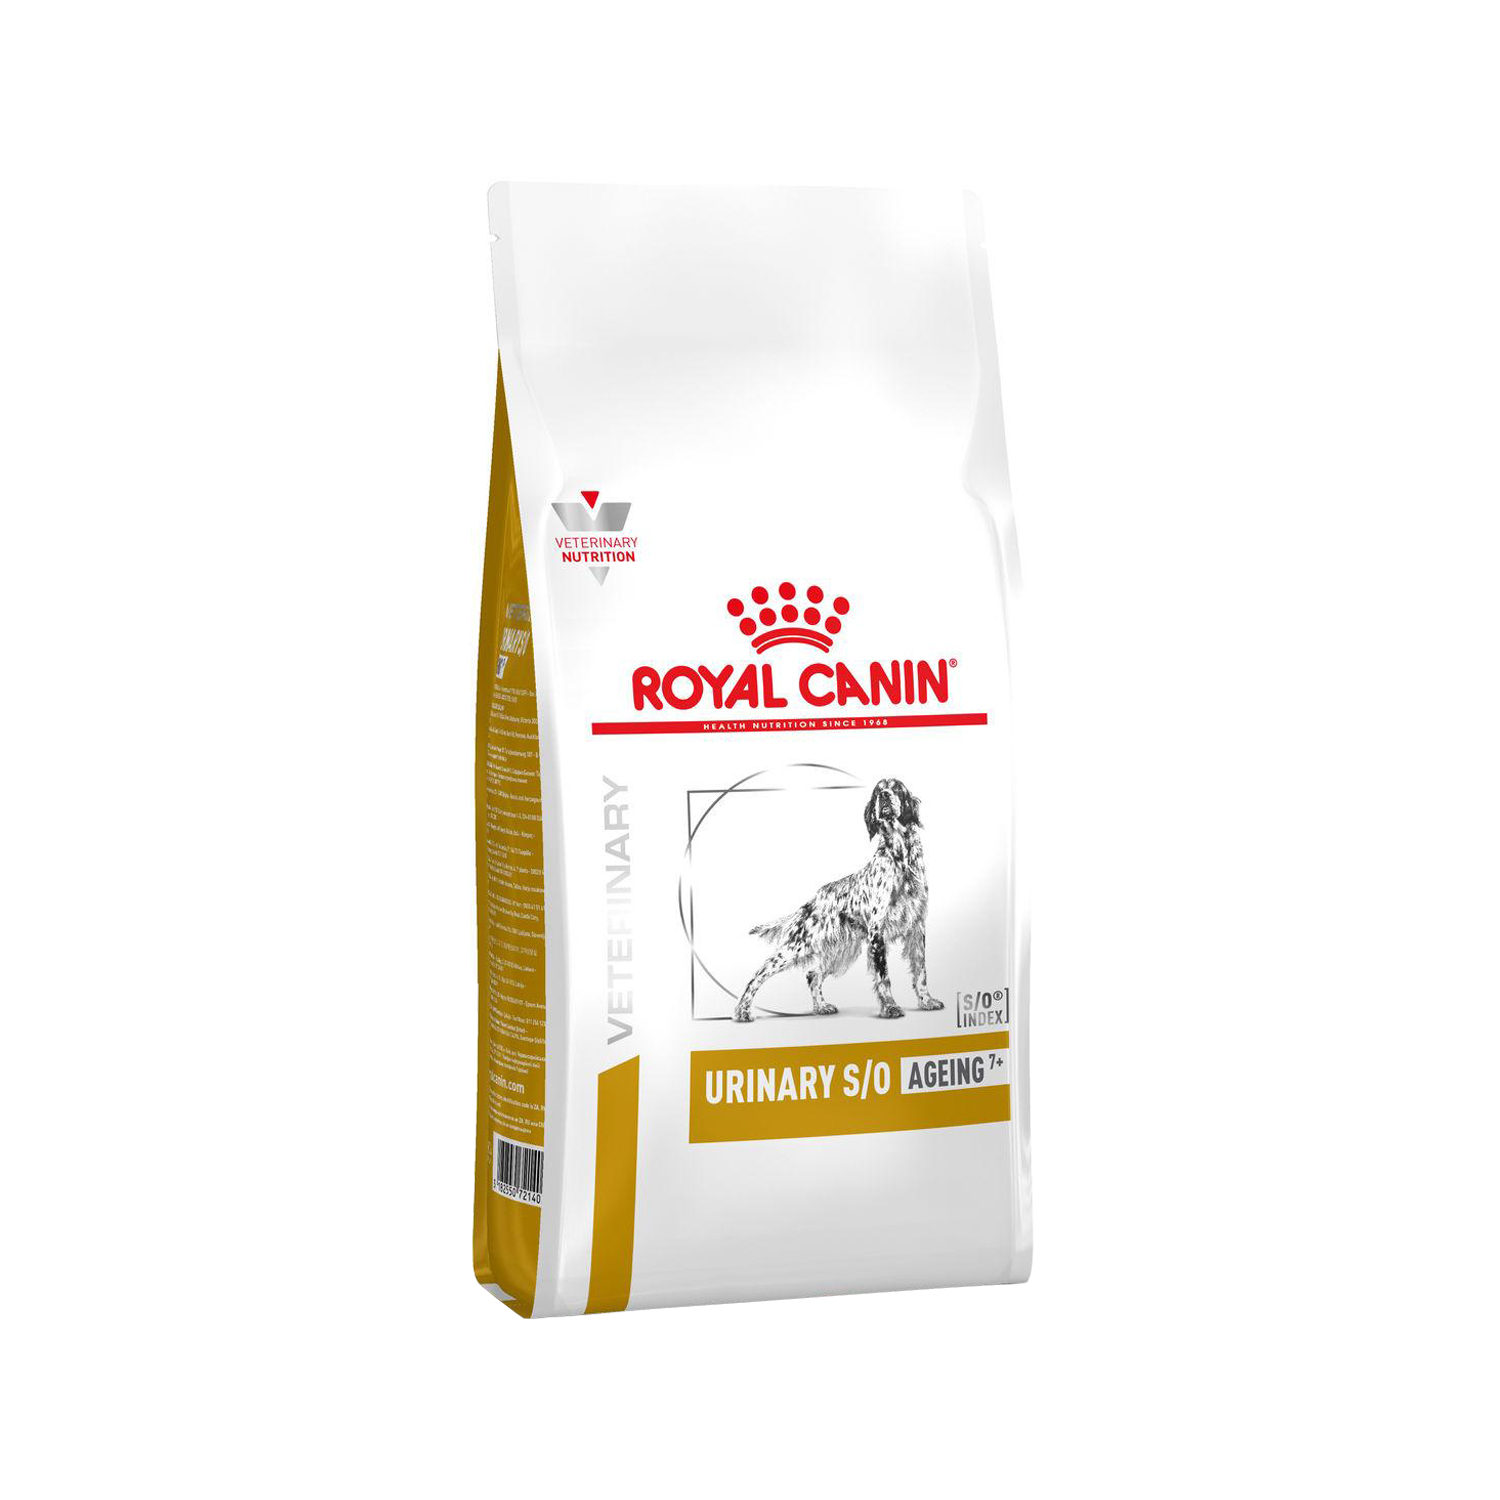 Royal Canin Urinary S/O Ageing 7+ Hundefutter